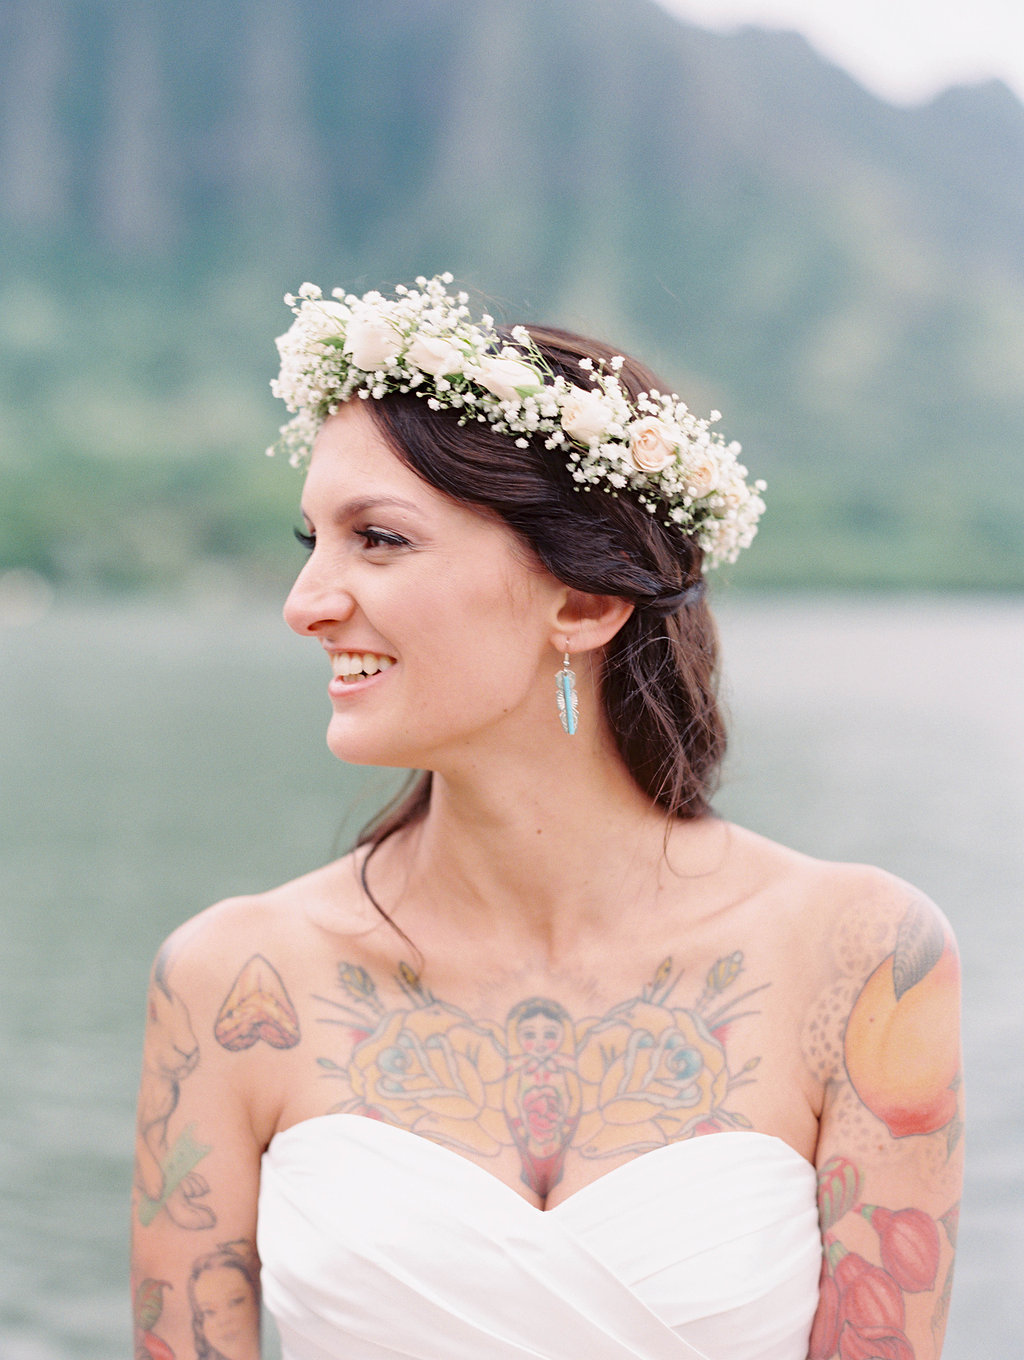 Hawaii Bride With Tattoos and Haku Lei